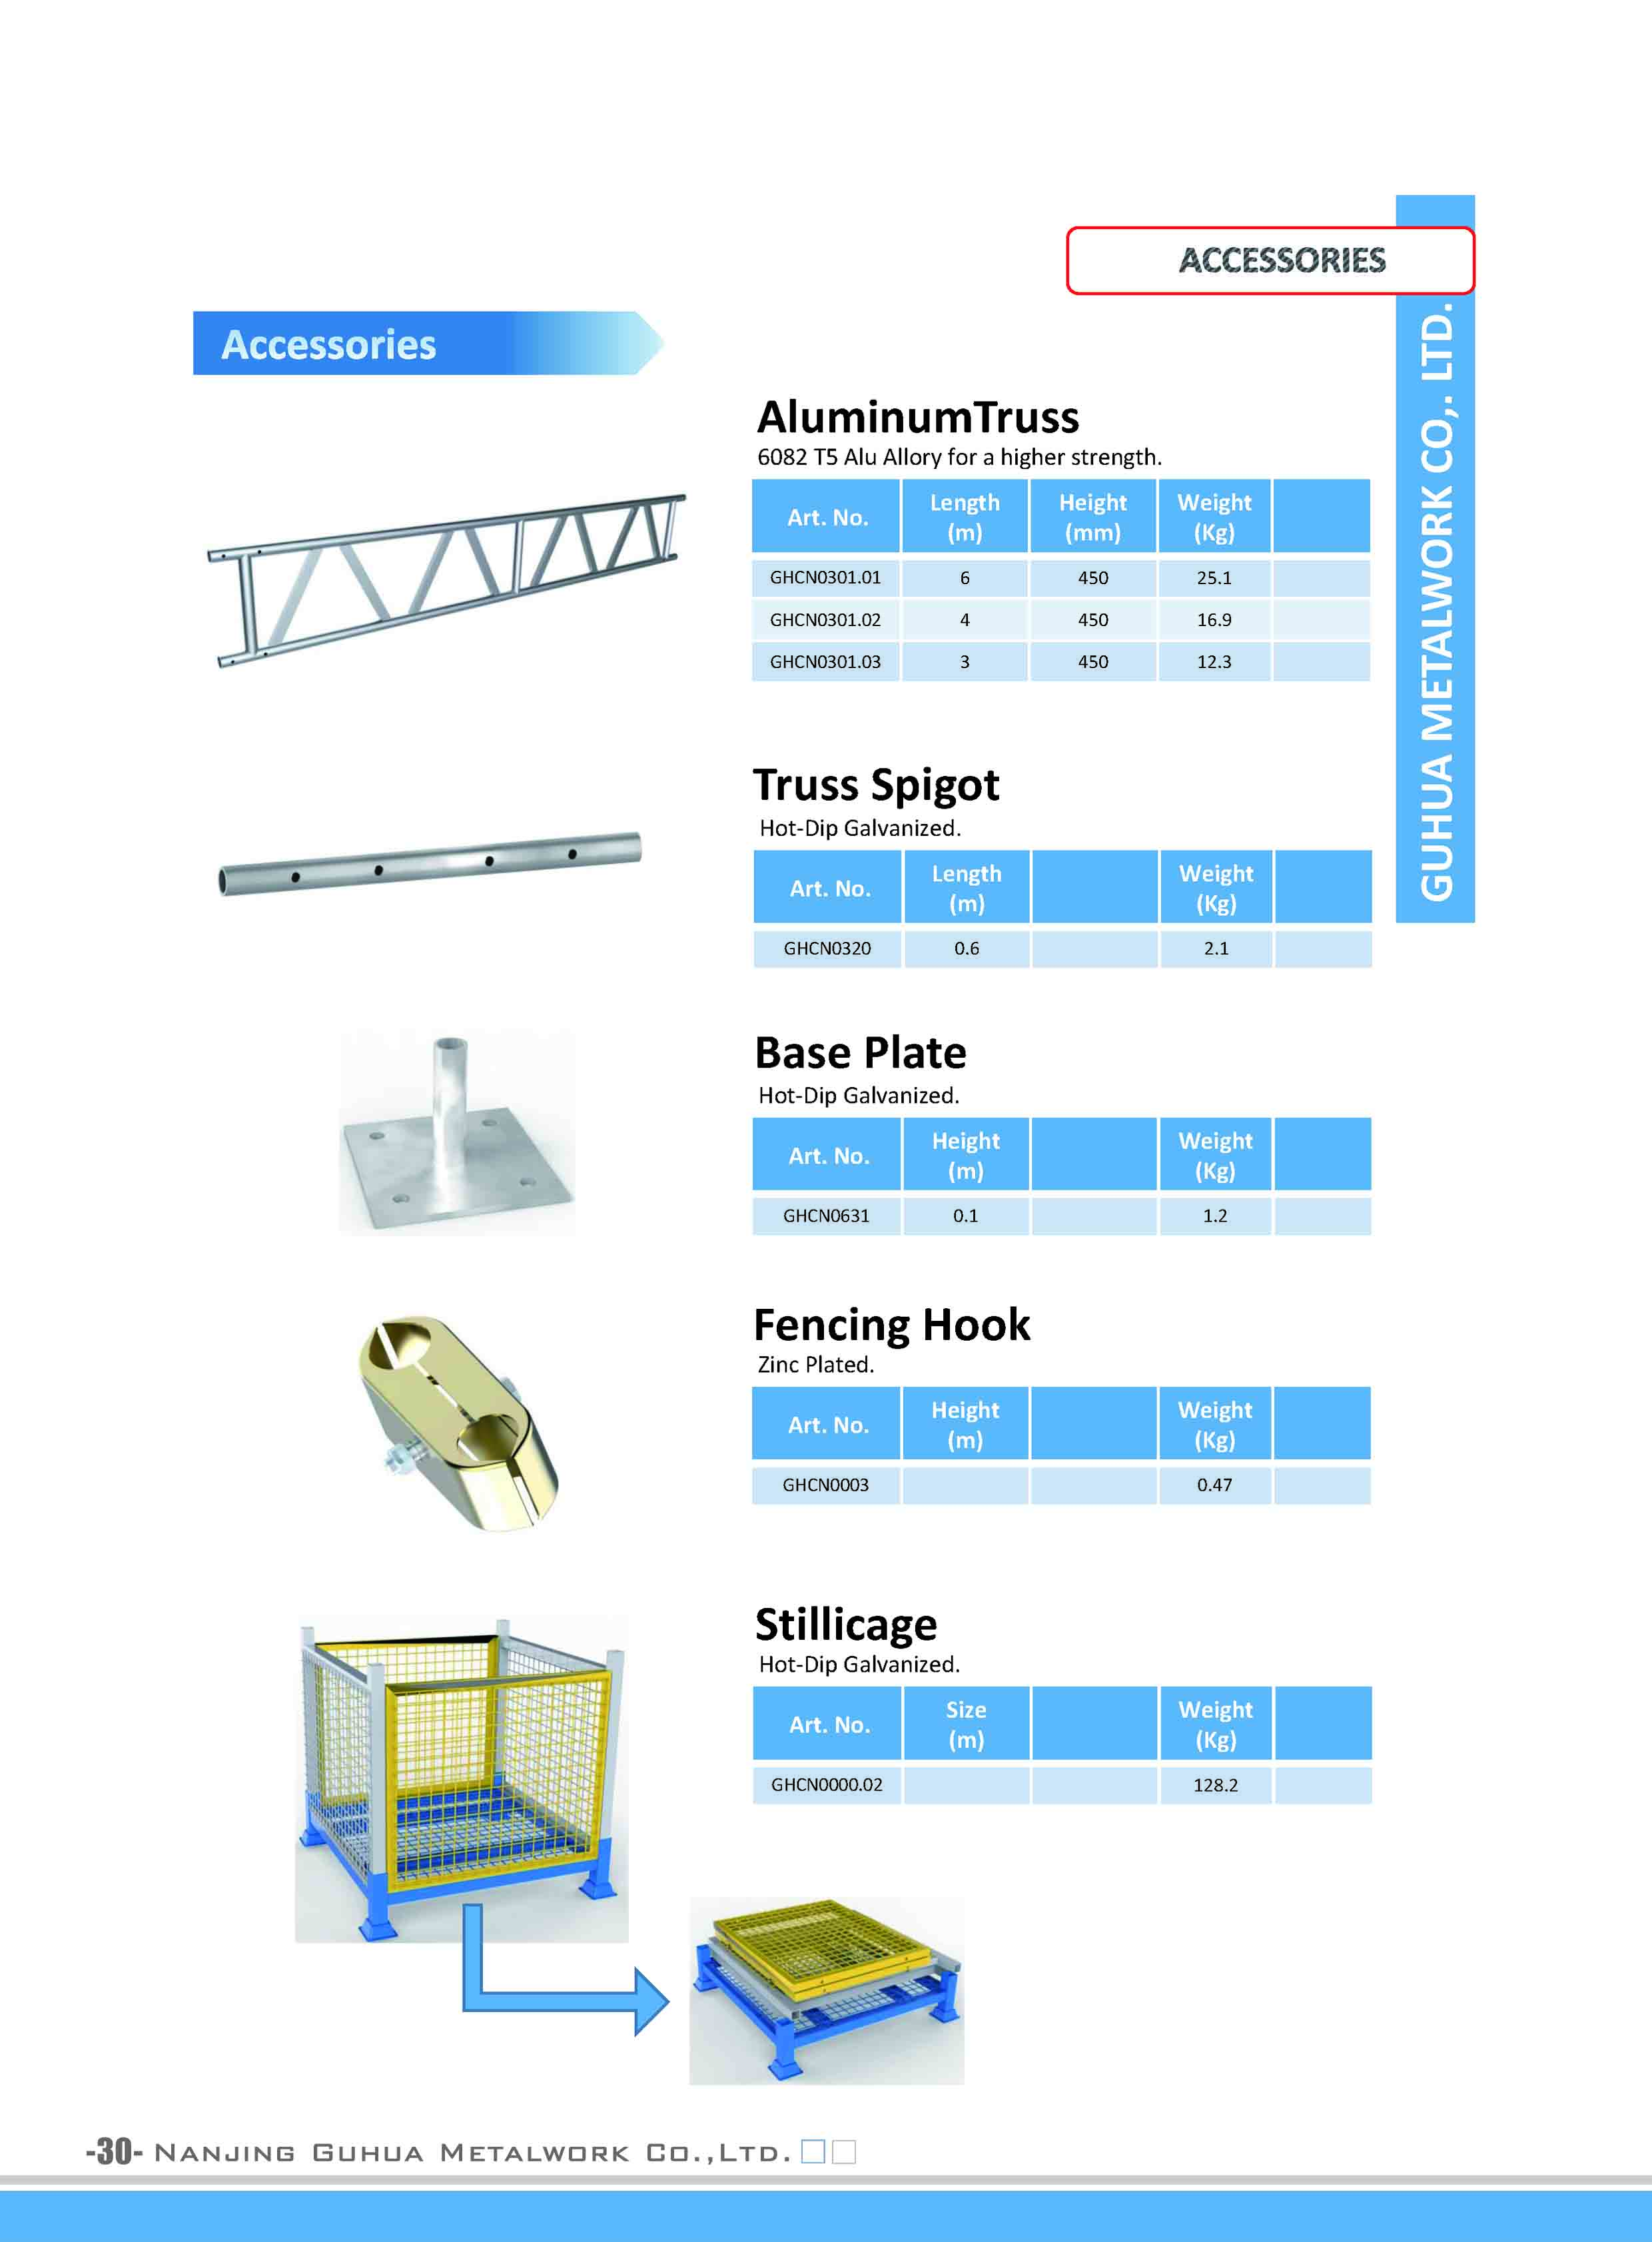 NGM_Scaffolding accessories_components2